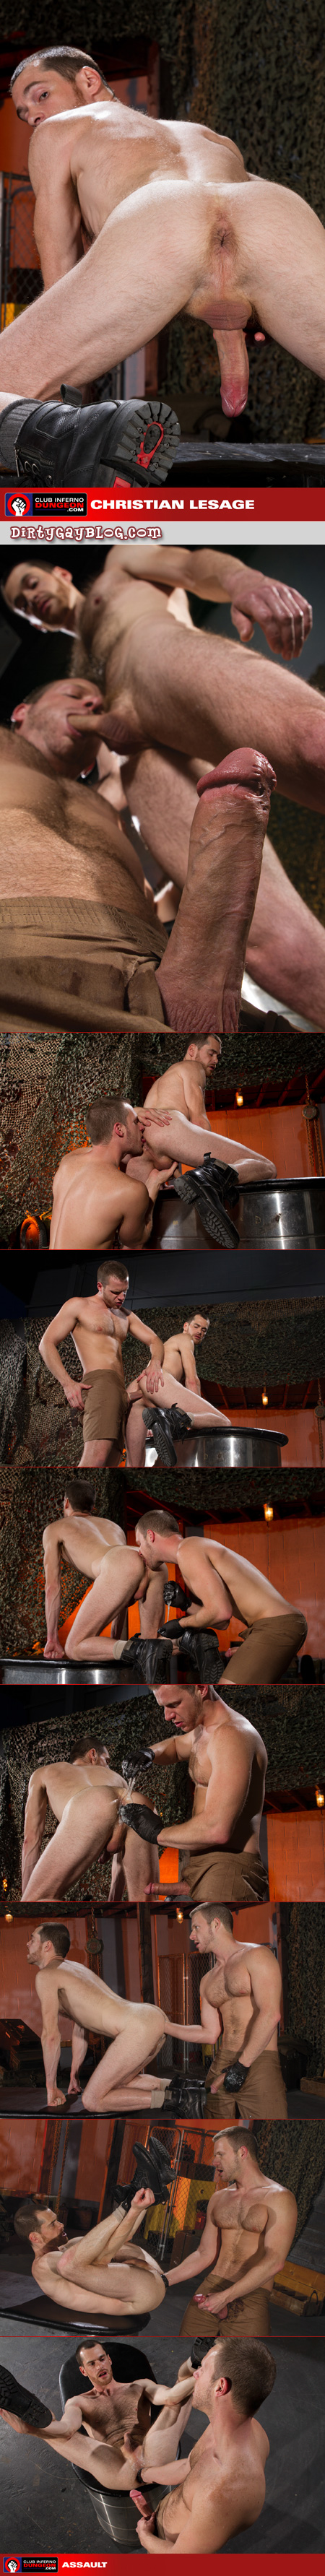 Dirty blonde soldier fisting another man in his ass.